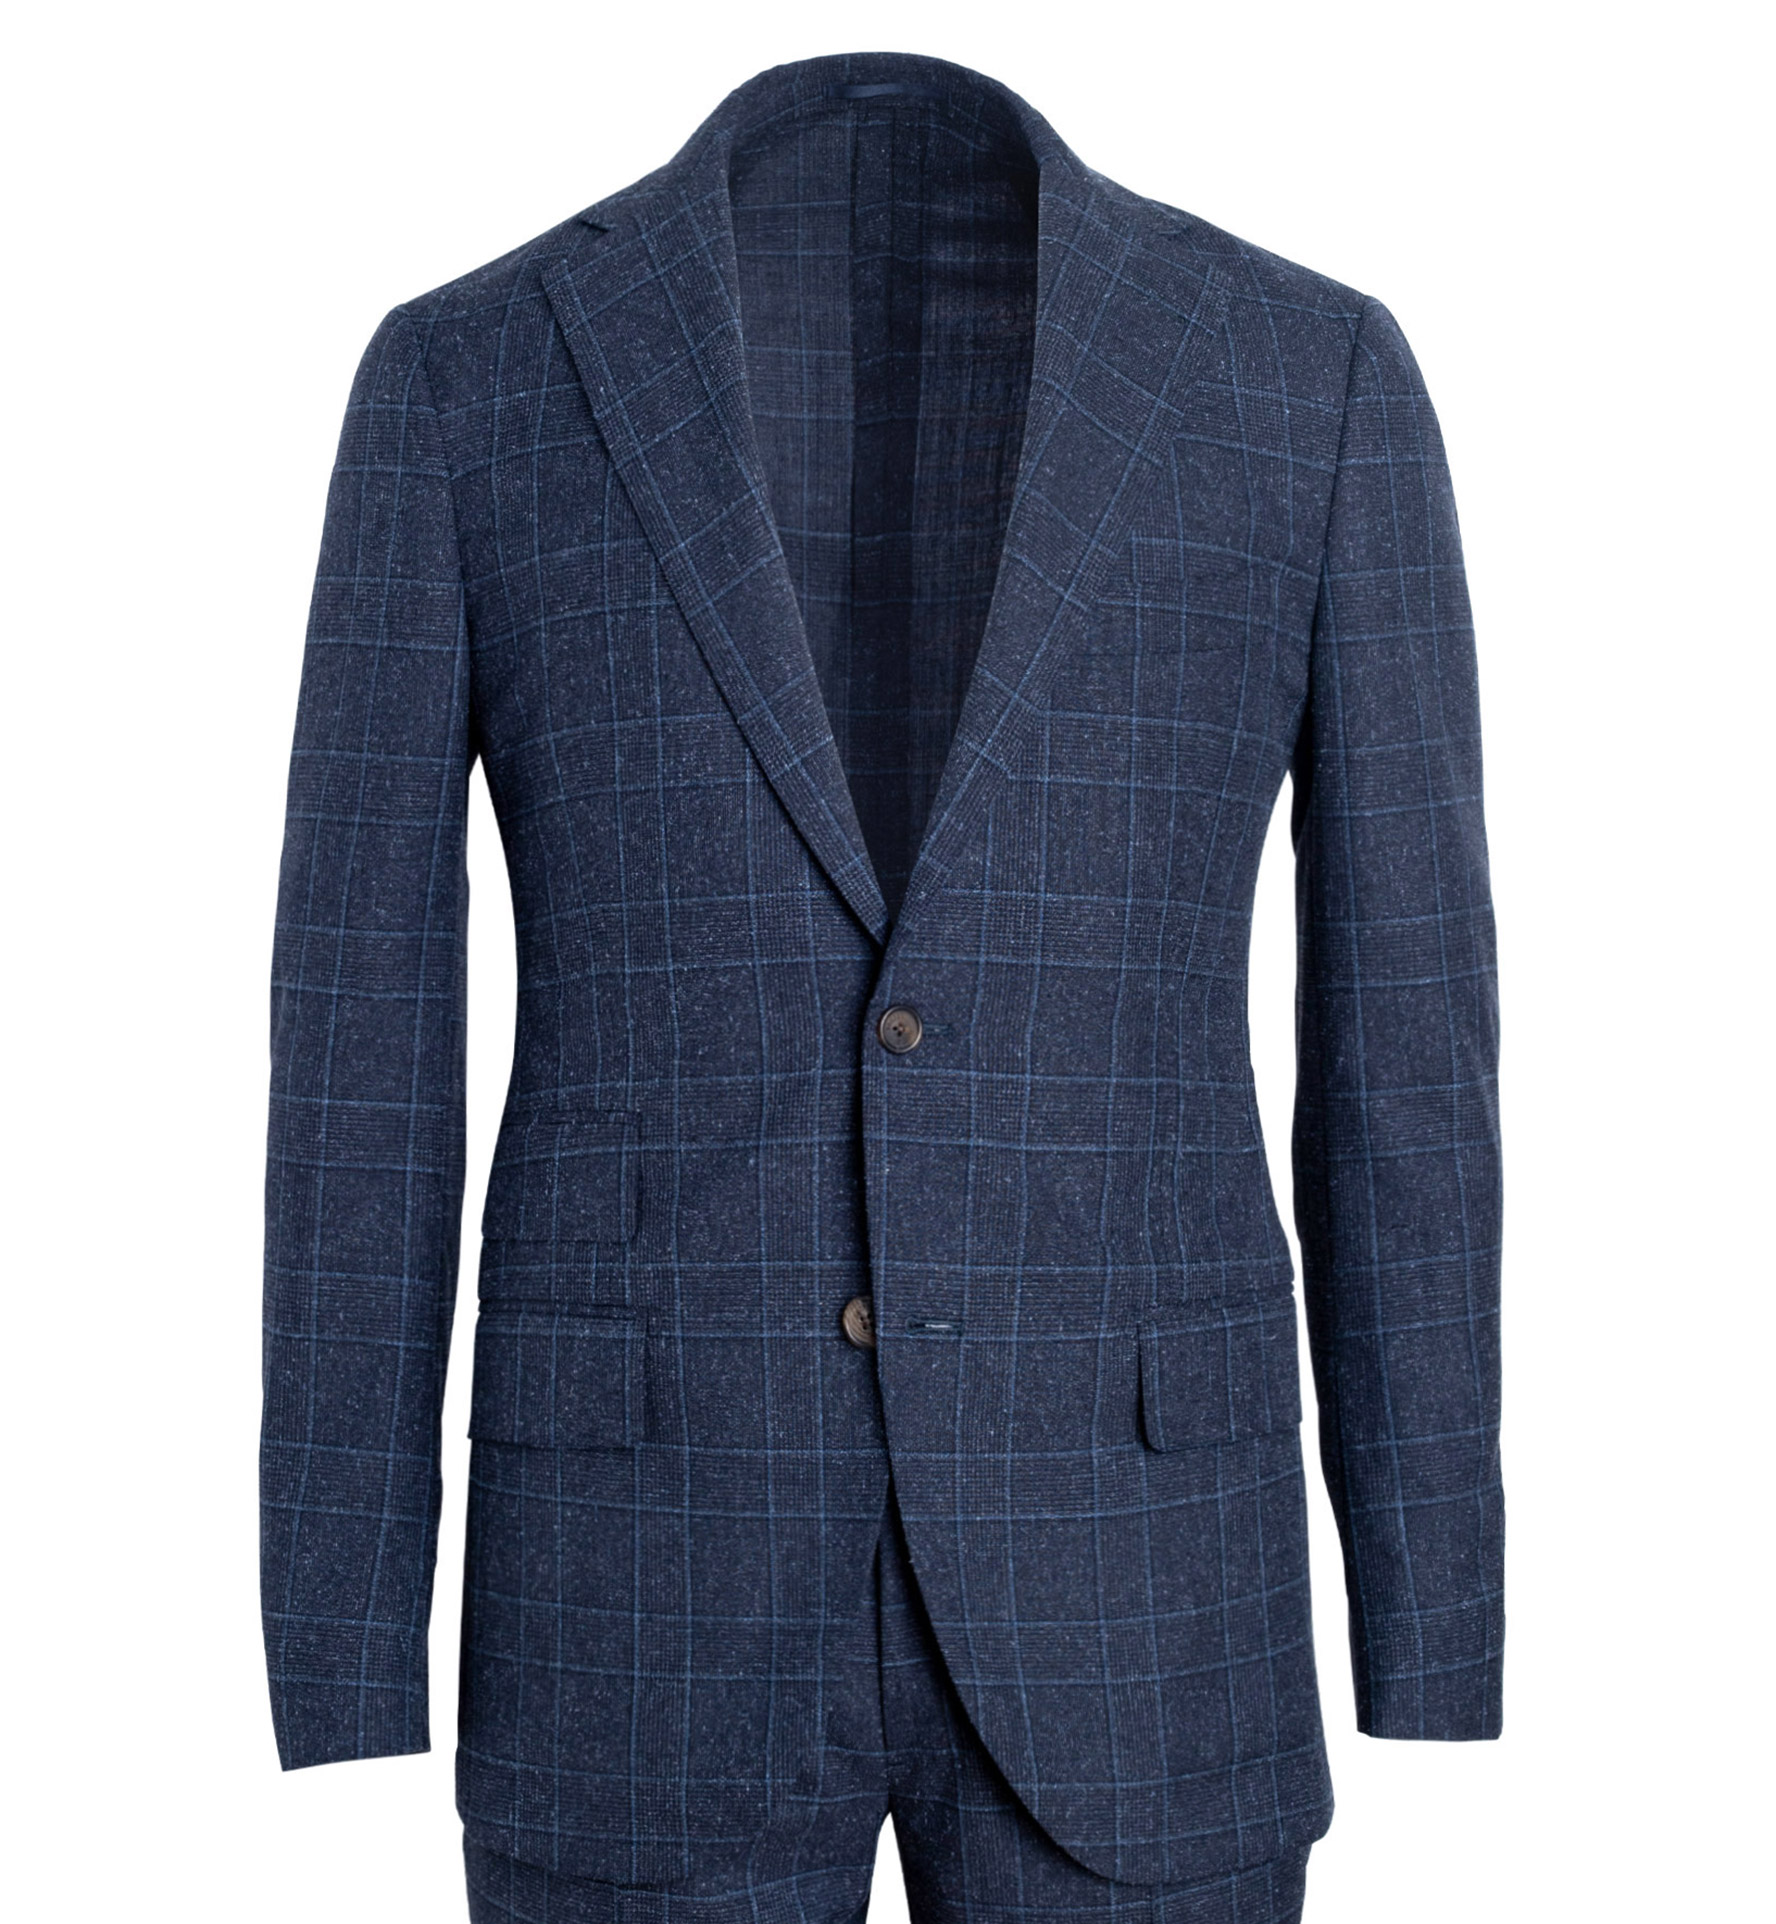 Zoom Image of Bedford Navy Glen Plaid Wool and Silk Suit Jacket